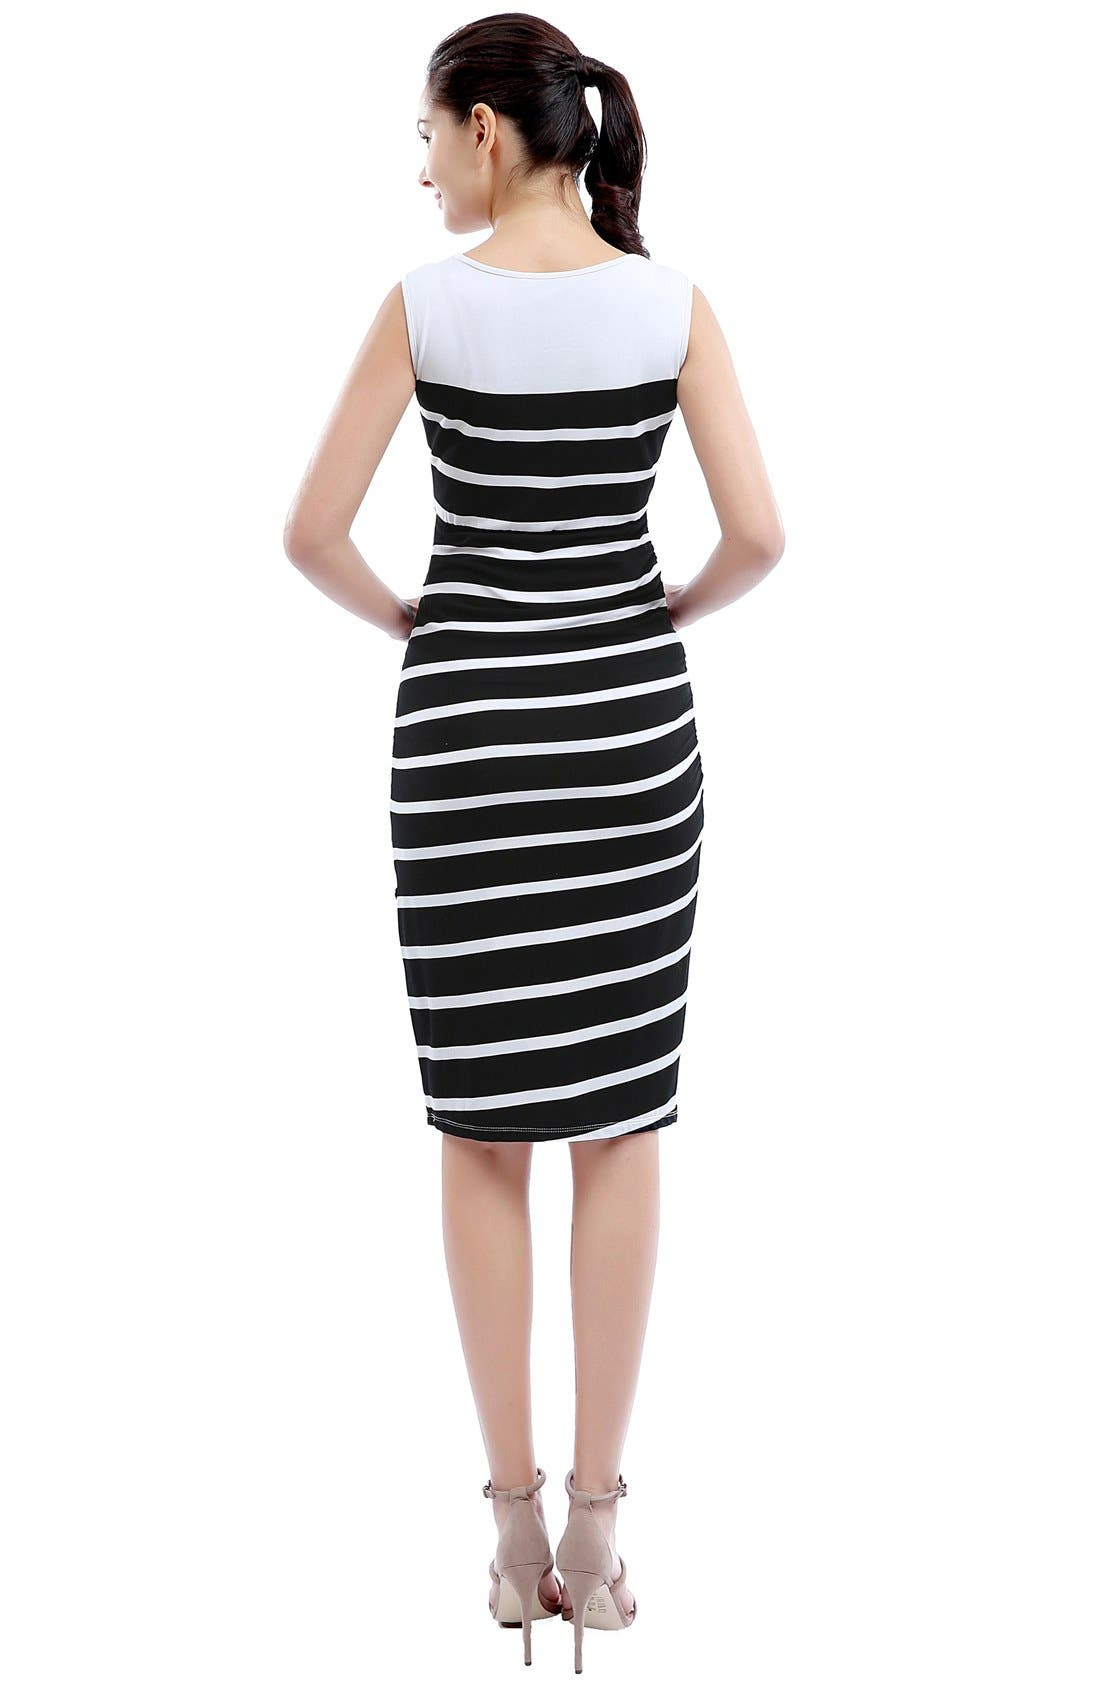 'Shea' Stripe Maternity Dress,                             Alternate thumbnail 2, color,                             Black/ White